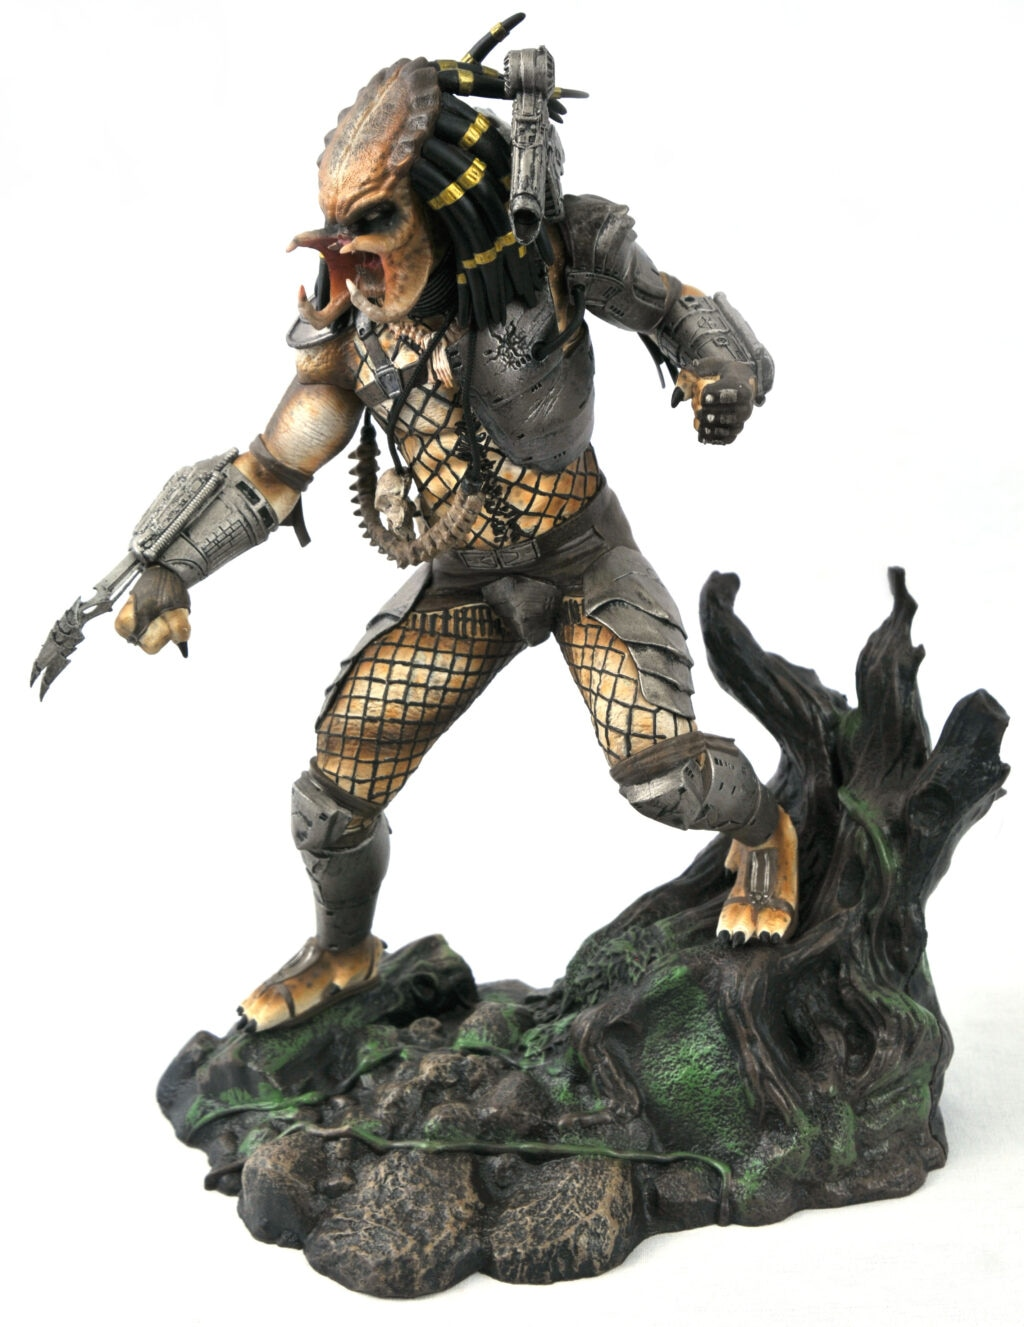 RGB 1552 1024x1327 - PREDATOR Unmasked: Diamond Select Toys Reveal Another SDCC 2020 Exclusive